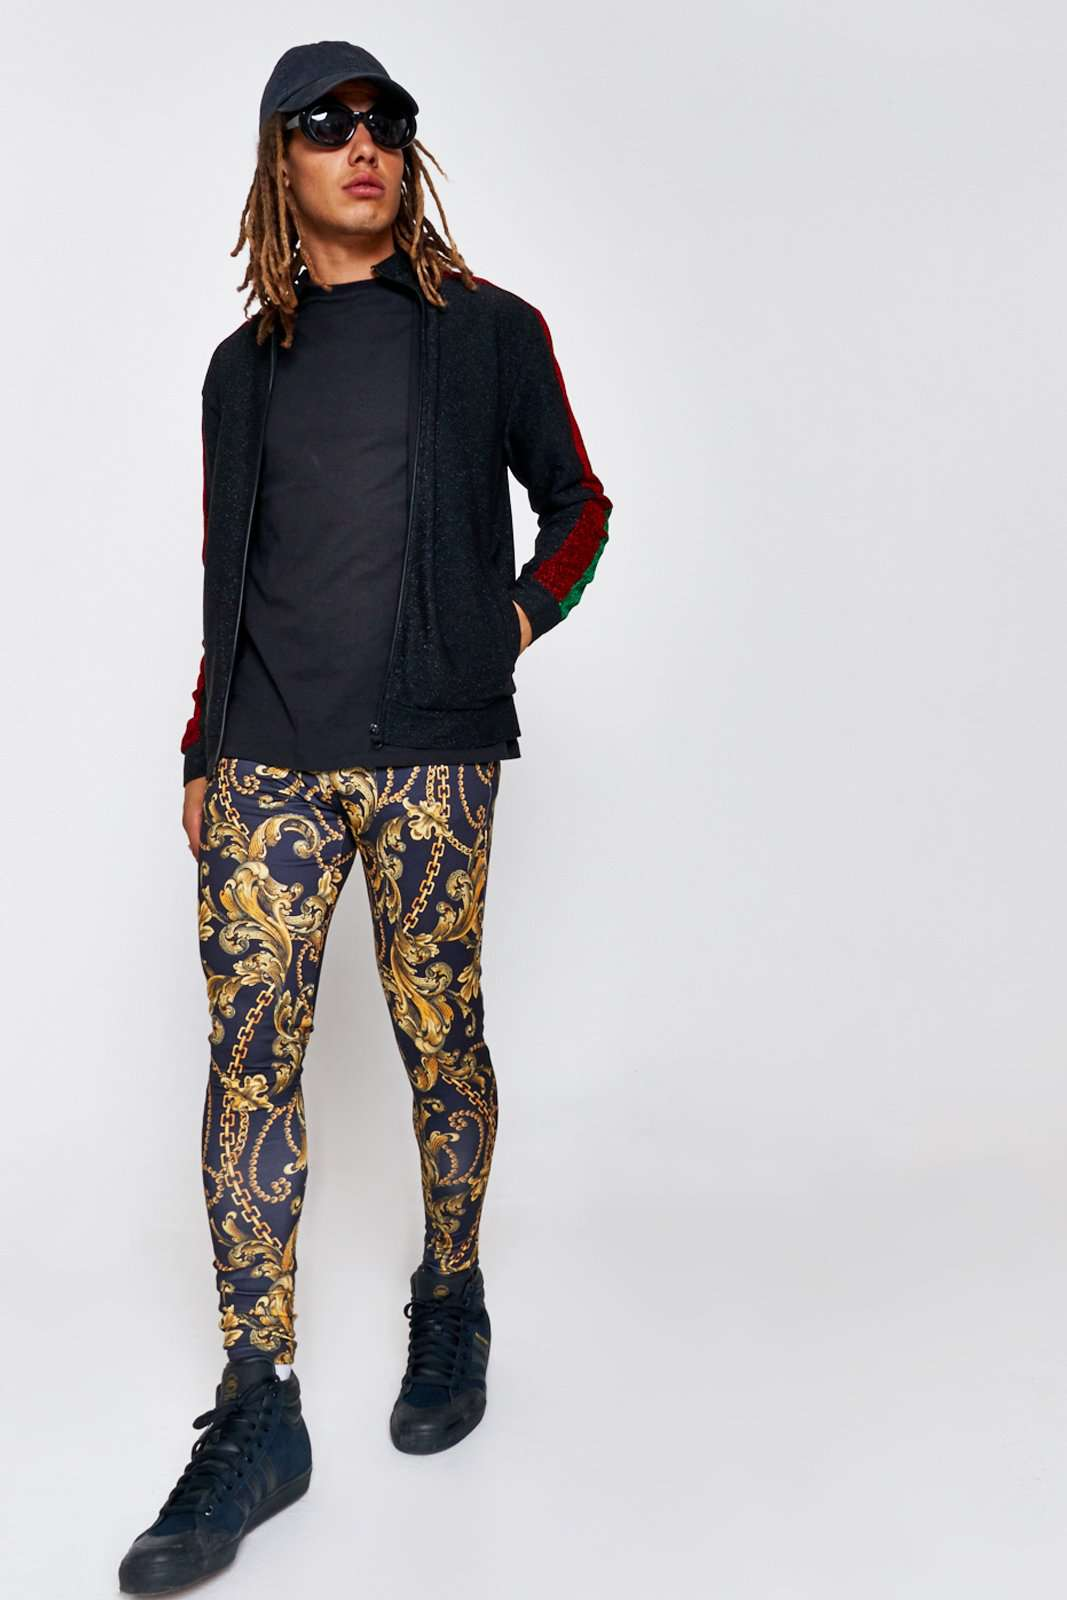 cc3784728a6c Baroque Chain Festival Meggings – Jaded London